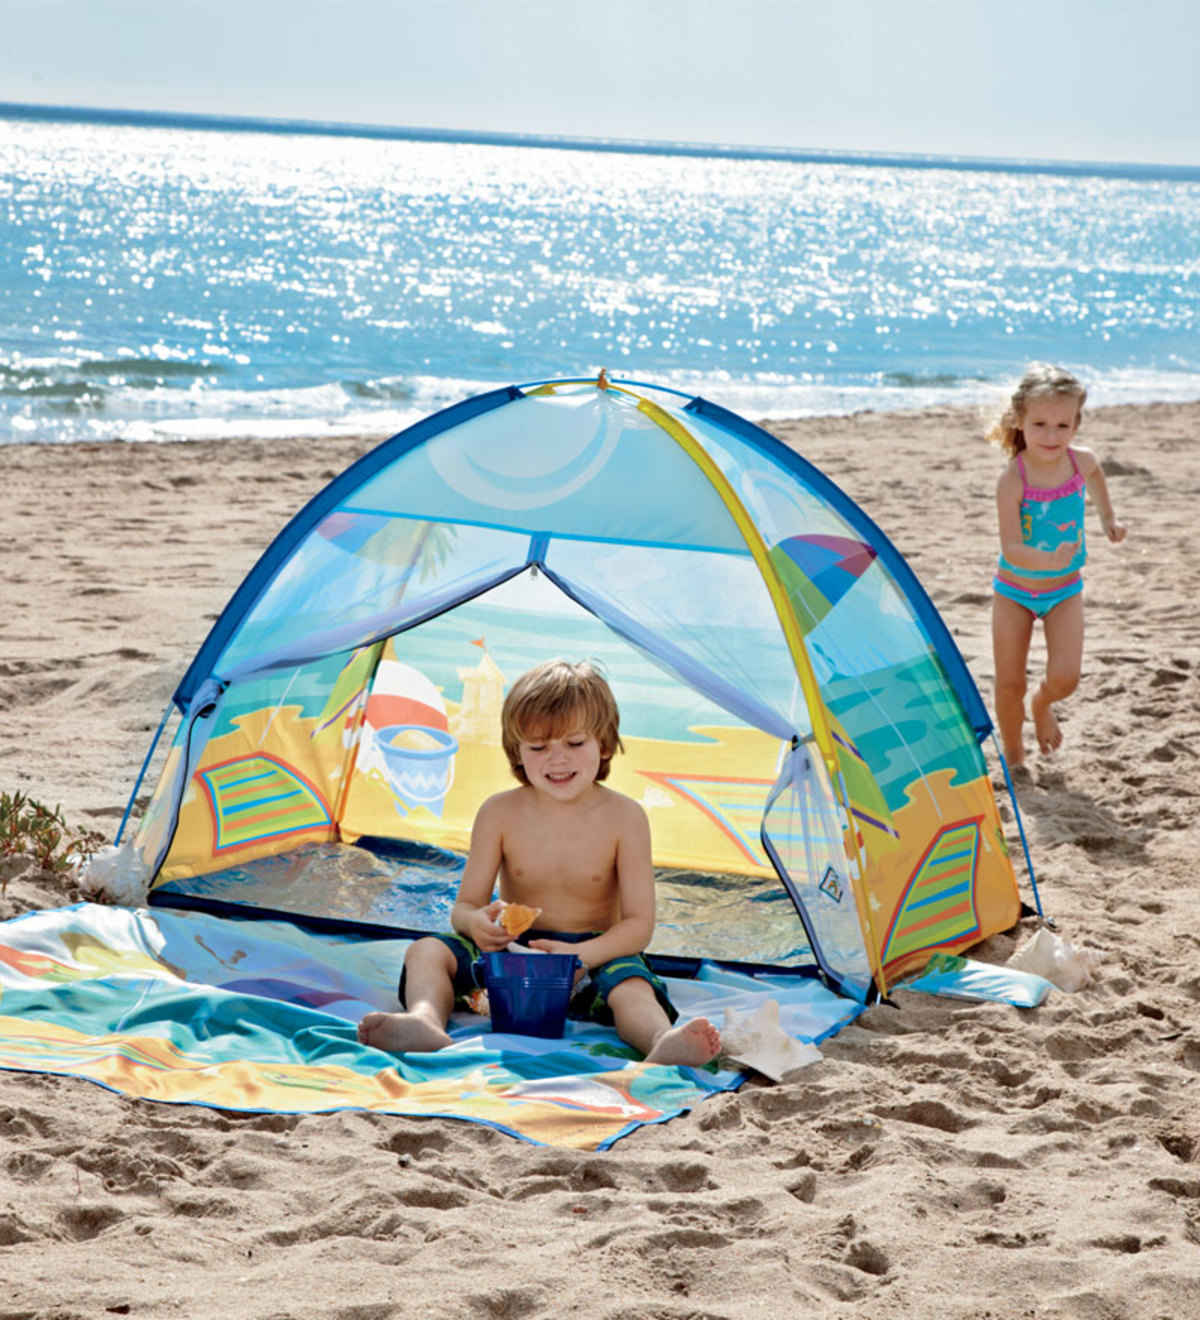 Easy-Set-Up Mesh Front Beach Cabana with Carrying Case